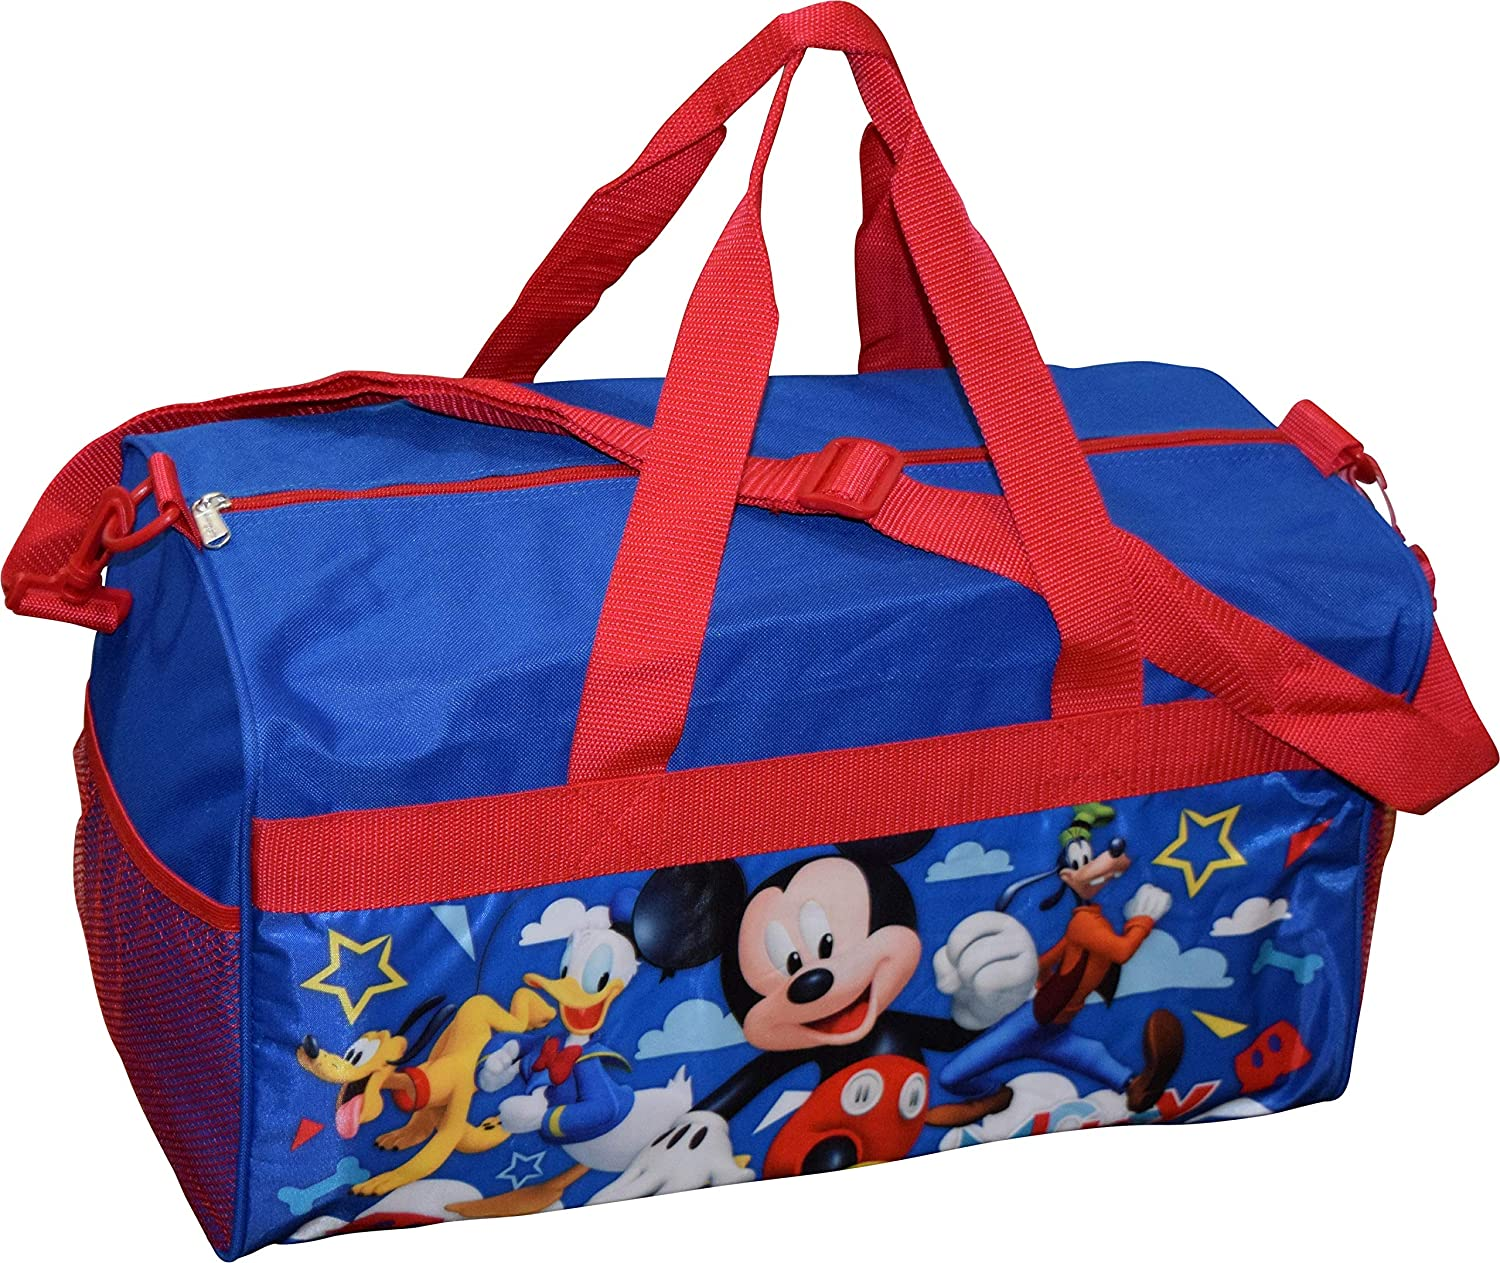 Mickey And The Roadster Racers 18 Carry-On Duffel Bag